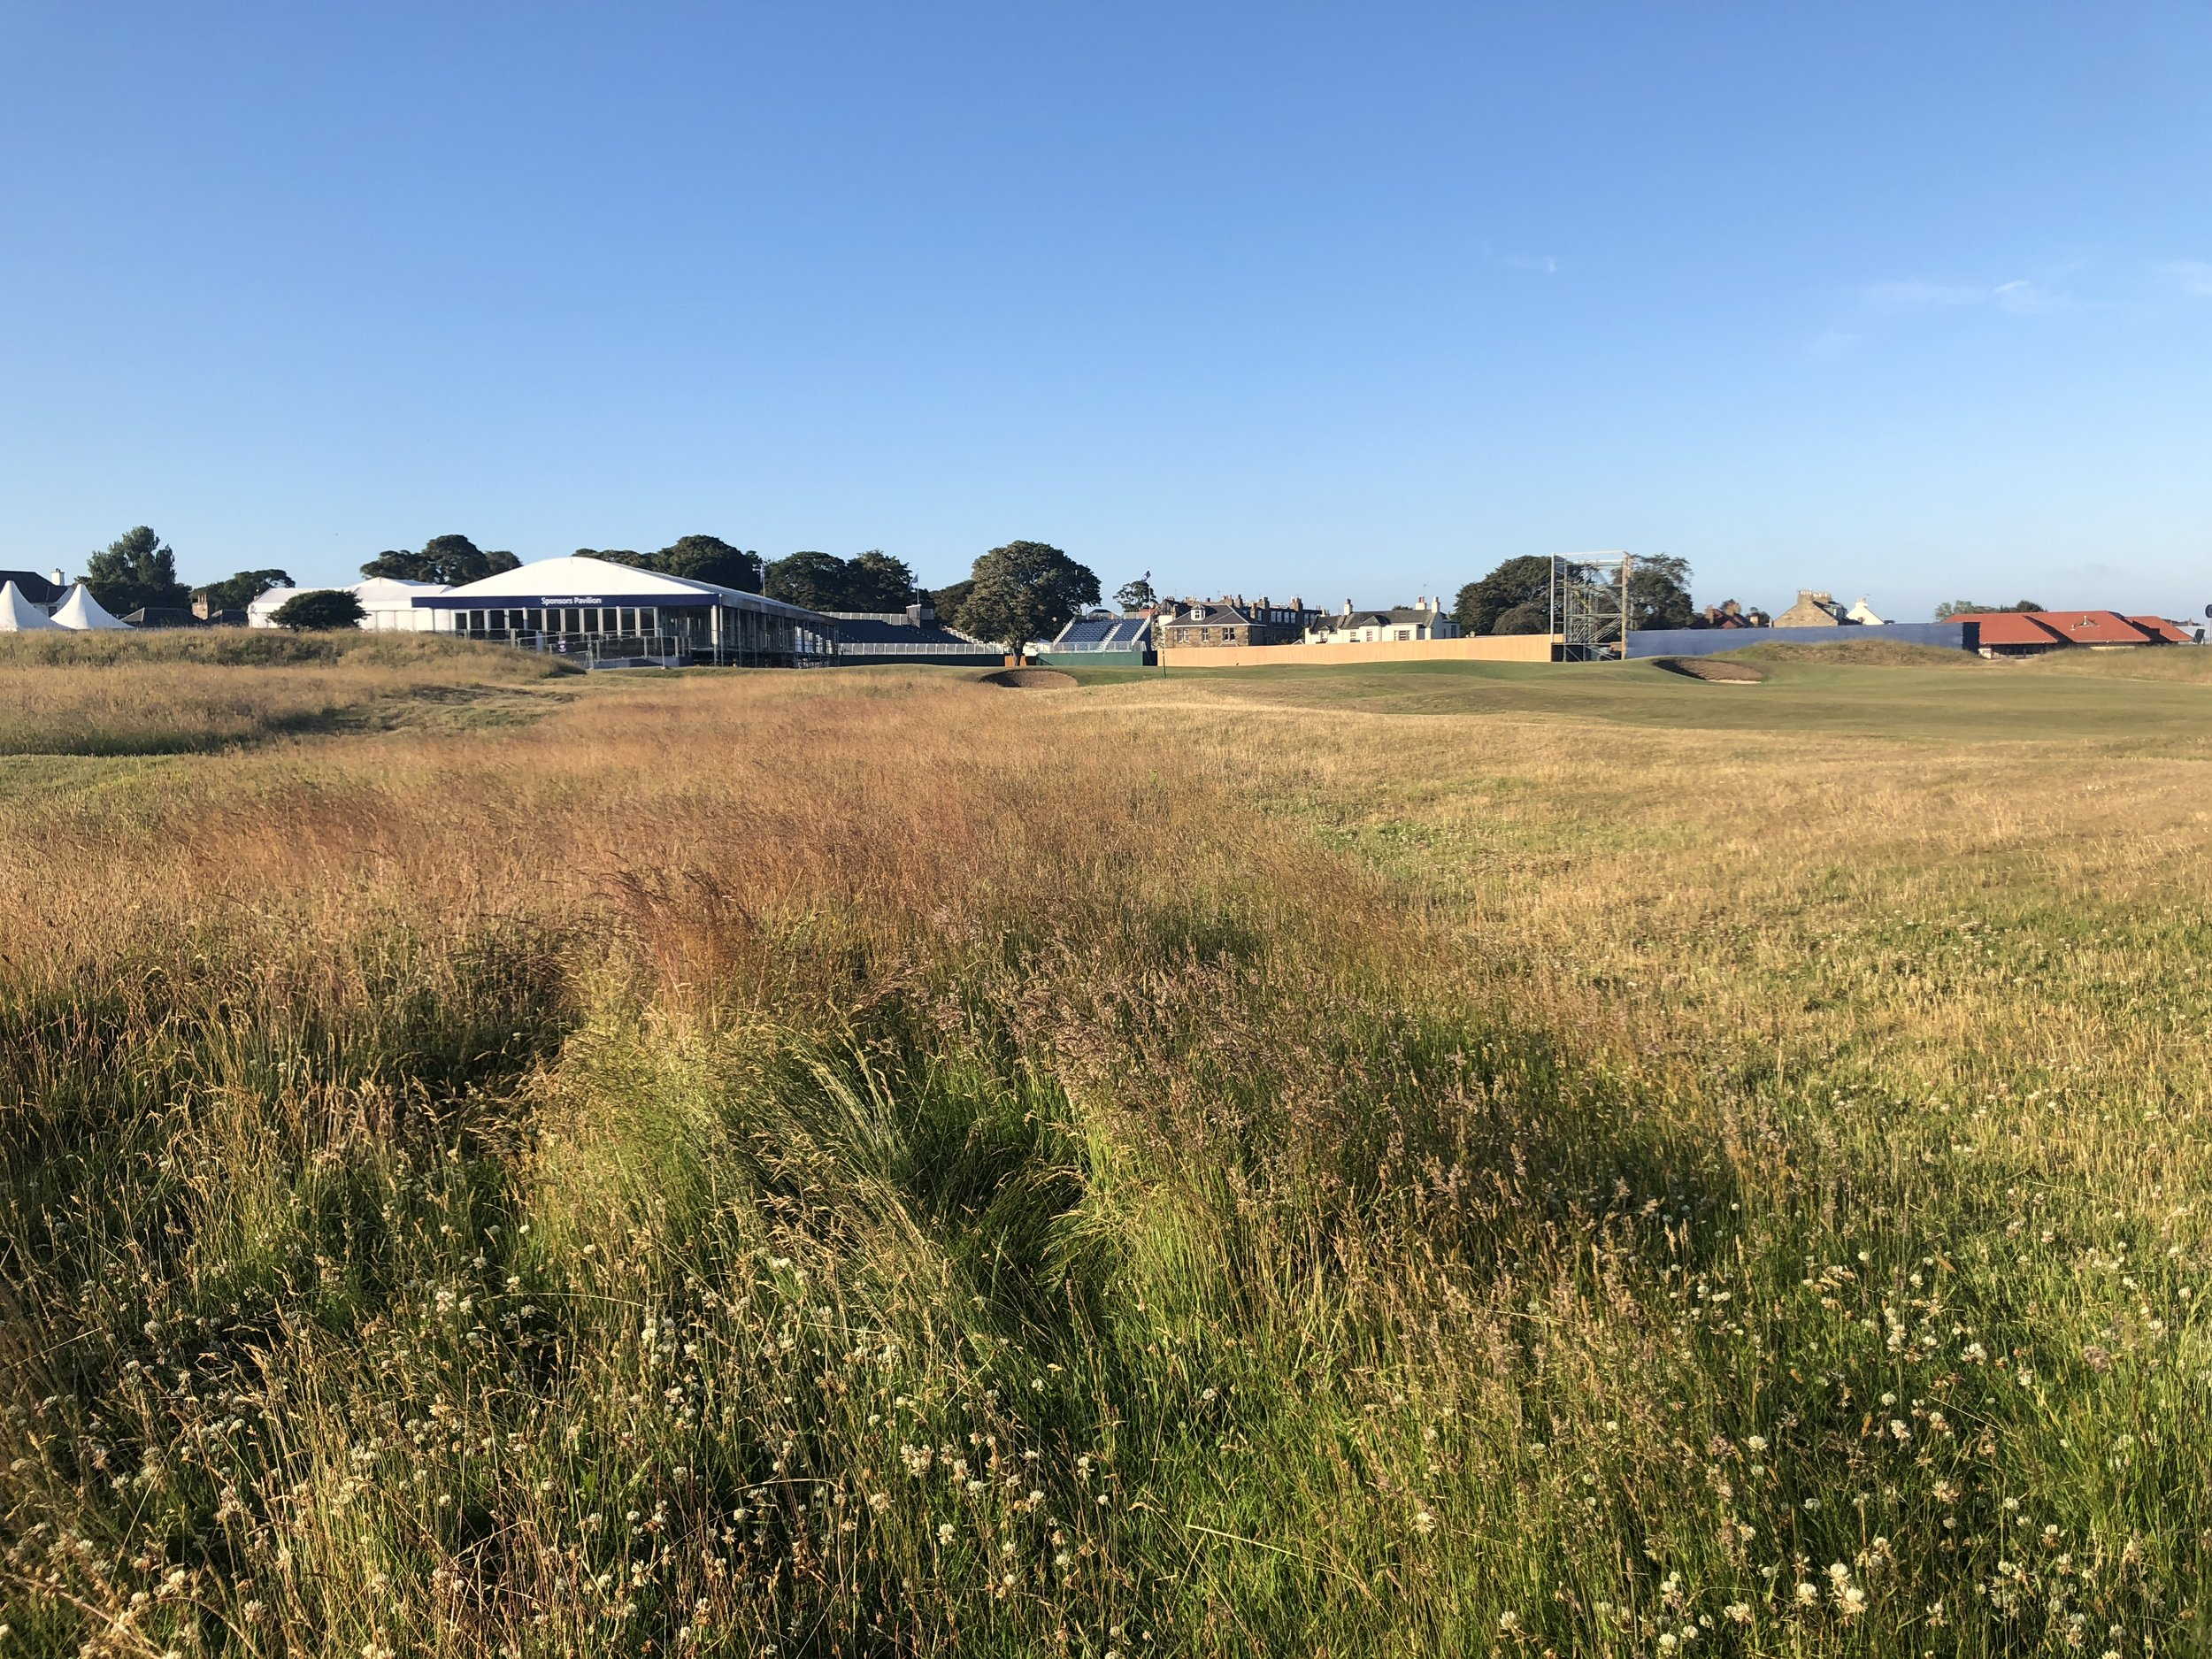 While the fairways are wide at Gullane, the rough can still be punishing